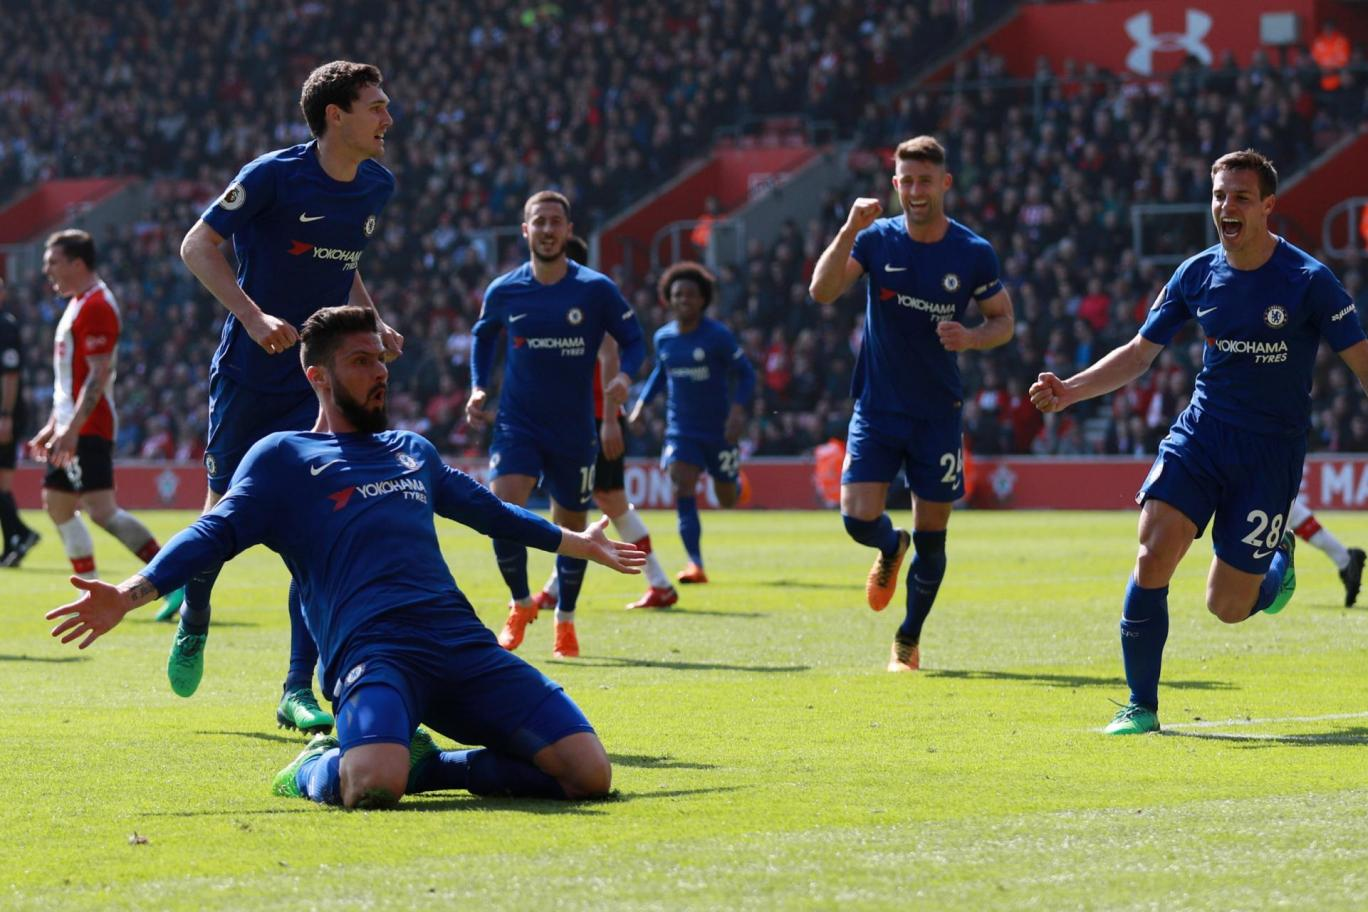 Chelsea players prefer deferrals over cuts